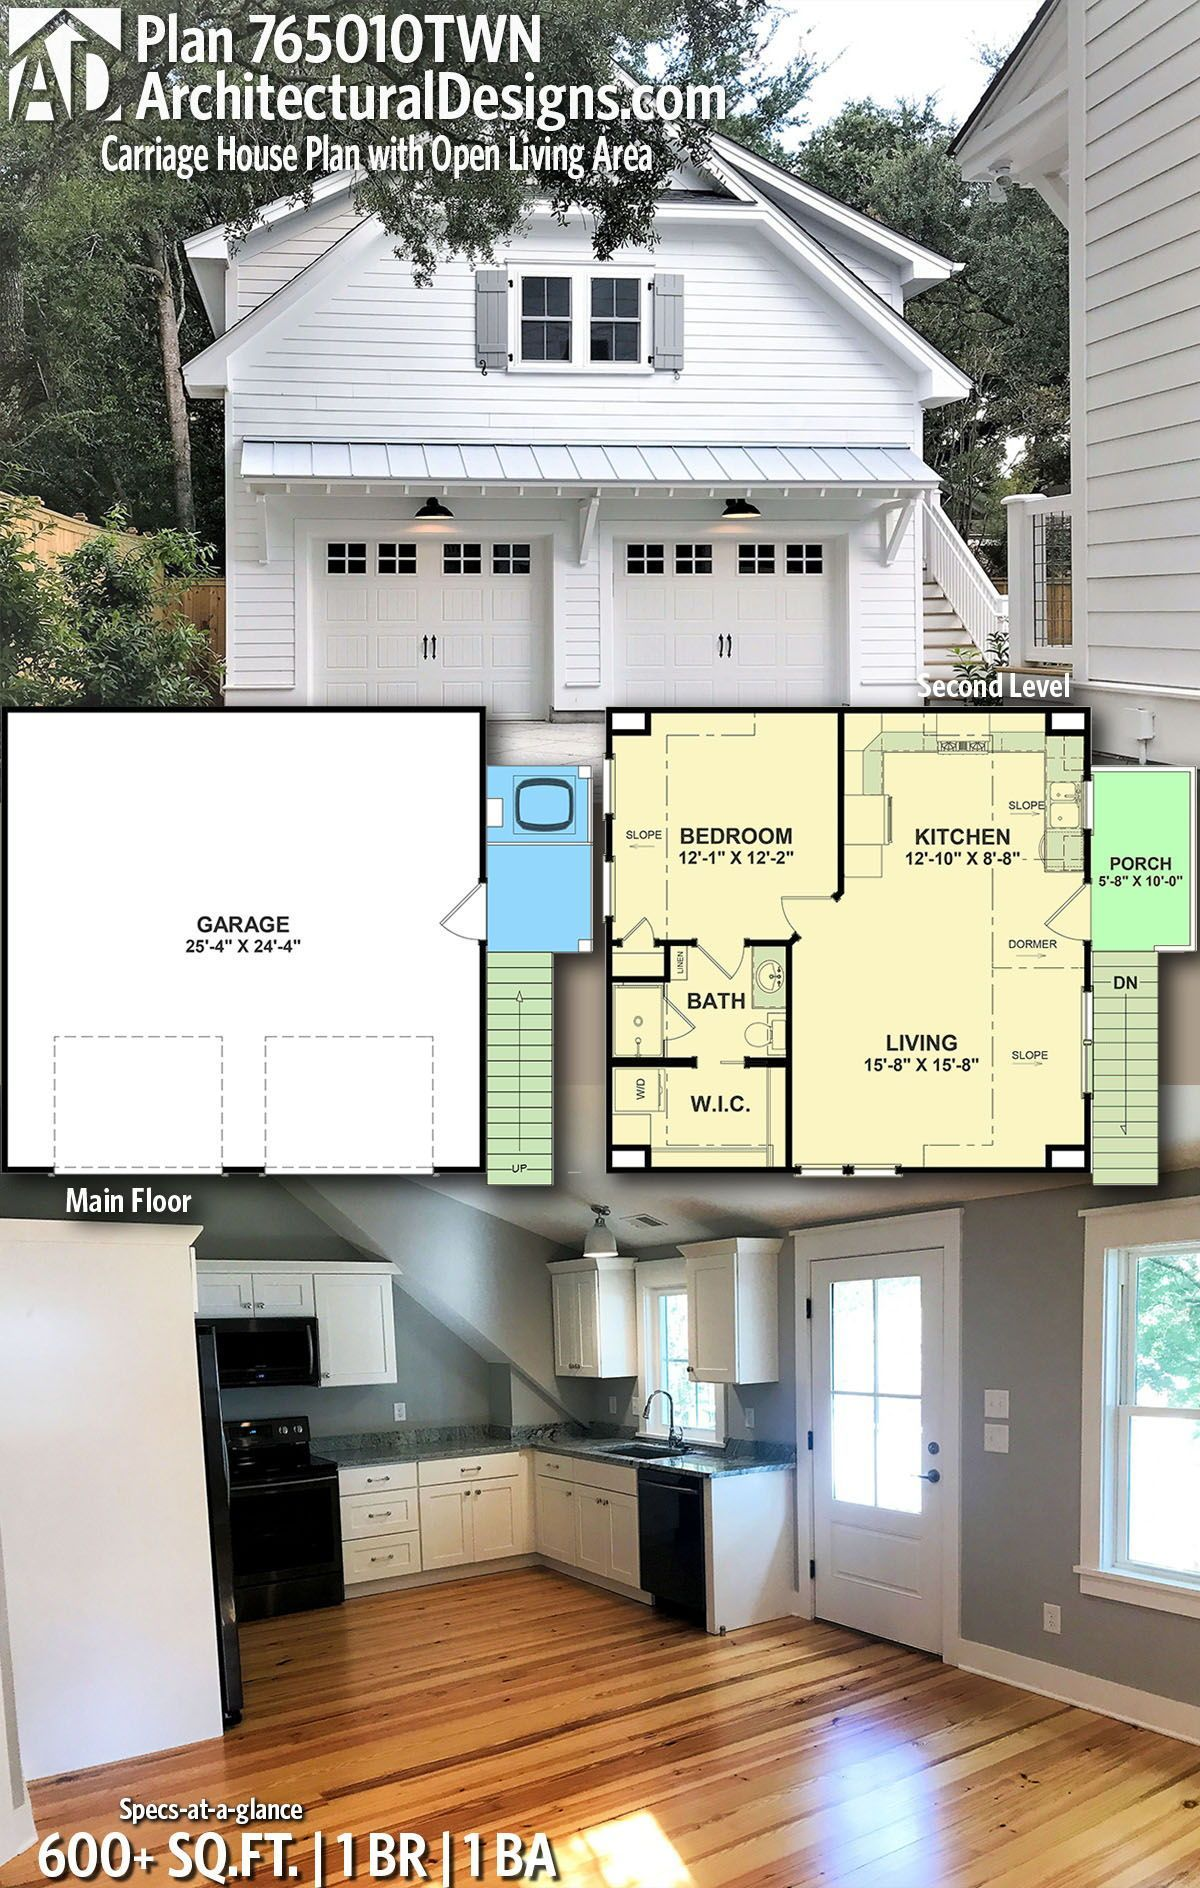 Plan 765010TWN: Carriage House Plan with Open Living Area #garageplans Architectural Designs Garage Plan 765010TWN gives you 1 bedrooms, 1 baths and 600+ sq. ft. Ready when you are! Where do YOU want to build? #765010TWN #adhouseplans #carraige #northwest #architecturaldesigns #houseplans #architecture #newhome #newconstruction #newhouse #homeplans #architecture #home #homesweethome